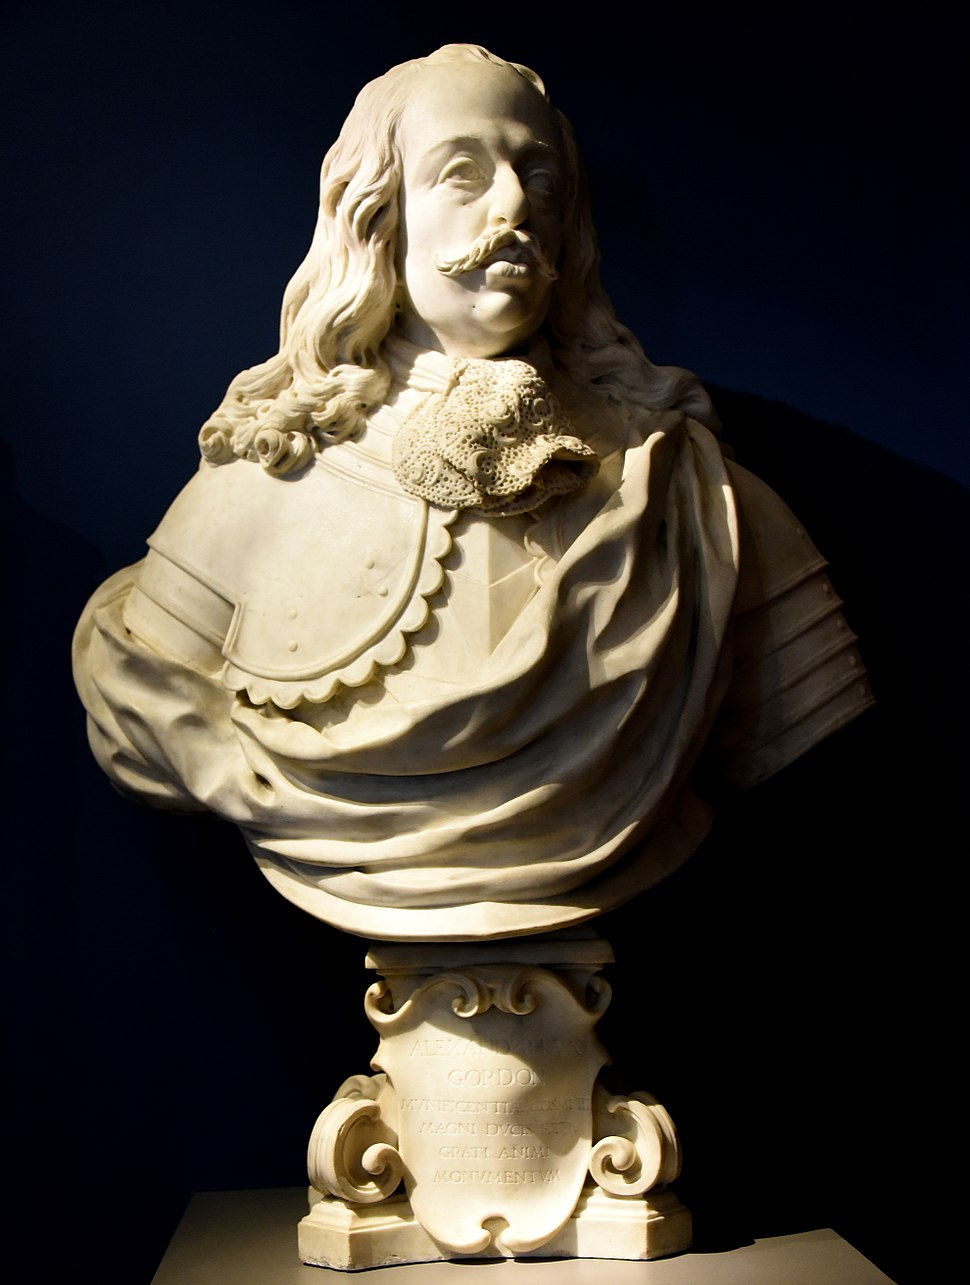 Bust of Cosimo III de%27 Medici, 1717-1718 CE. By Giovanni Battista Figgini. Marble, from Italy, Florence. The Victoria and Albert Museum, London